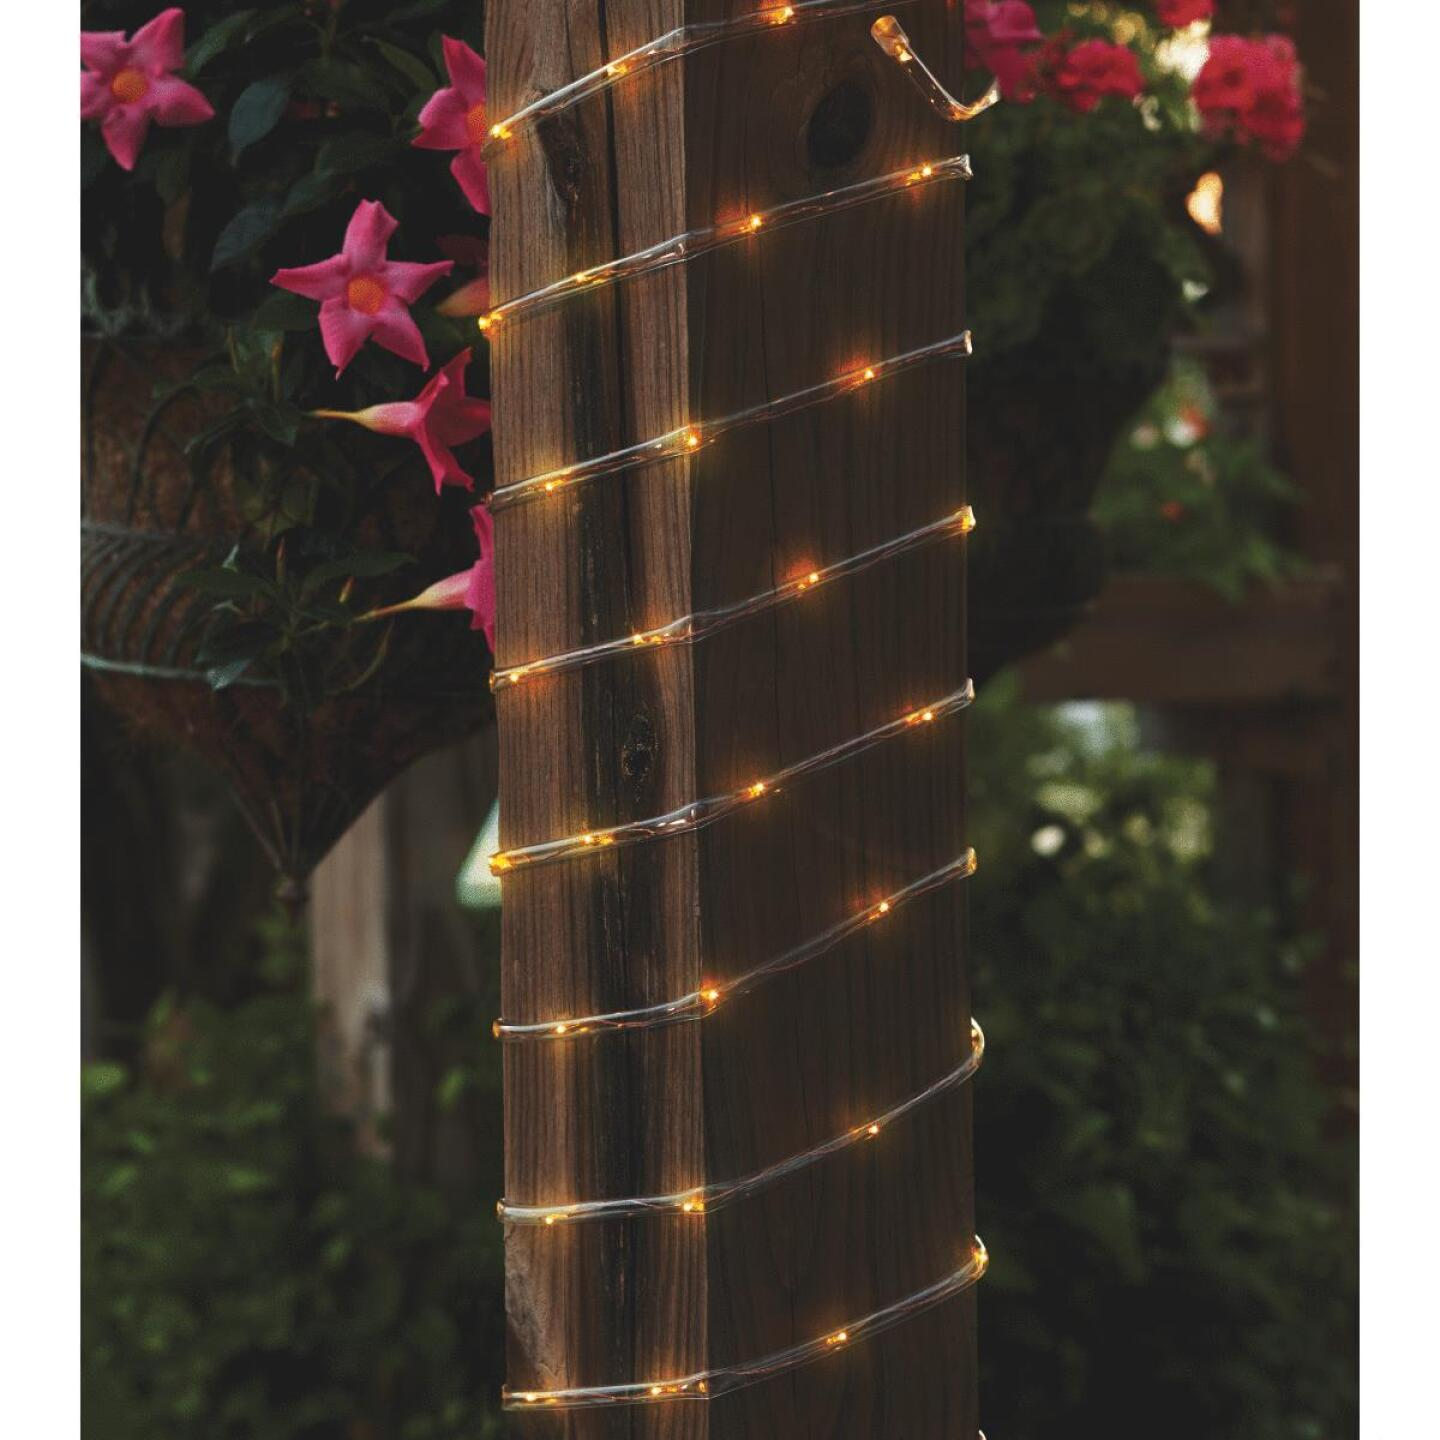 Outdoor Expressions 28 Ft.100-Light LED Warm White Solar Rope Light Image 3